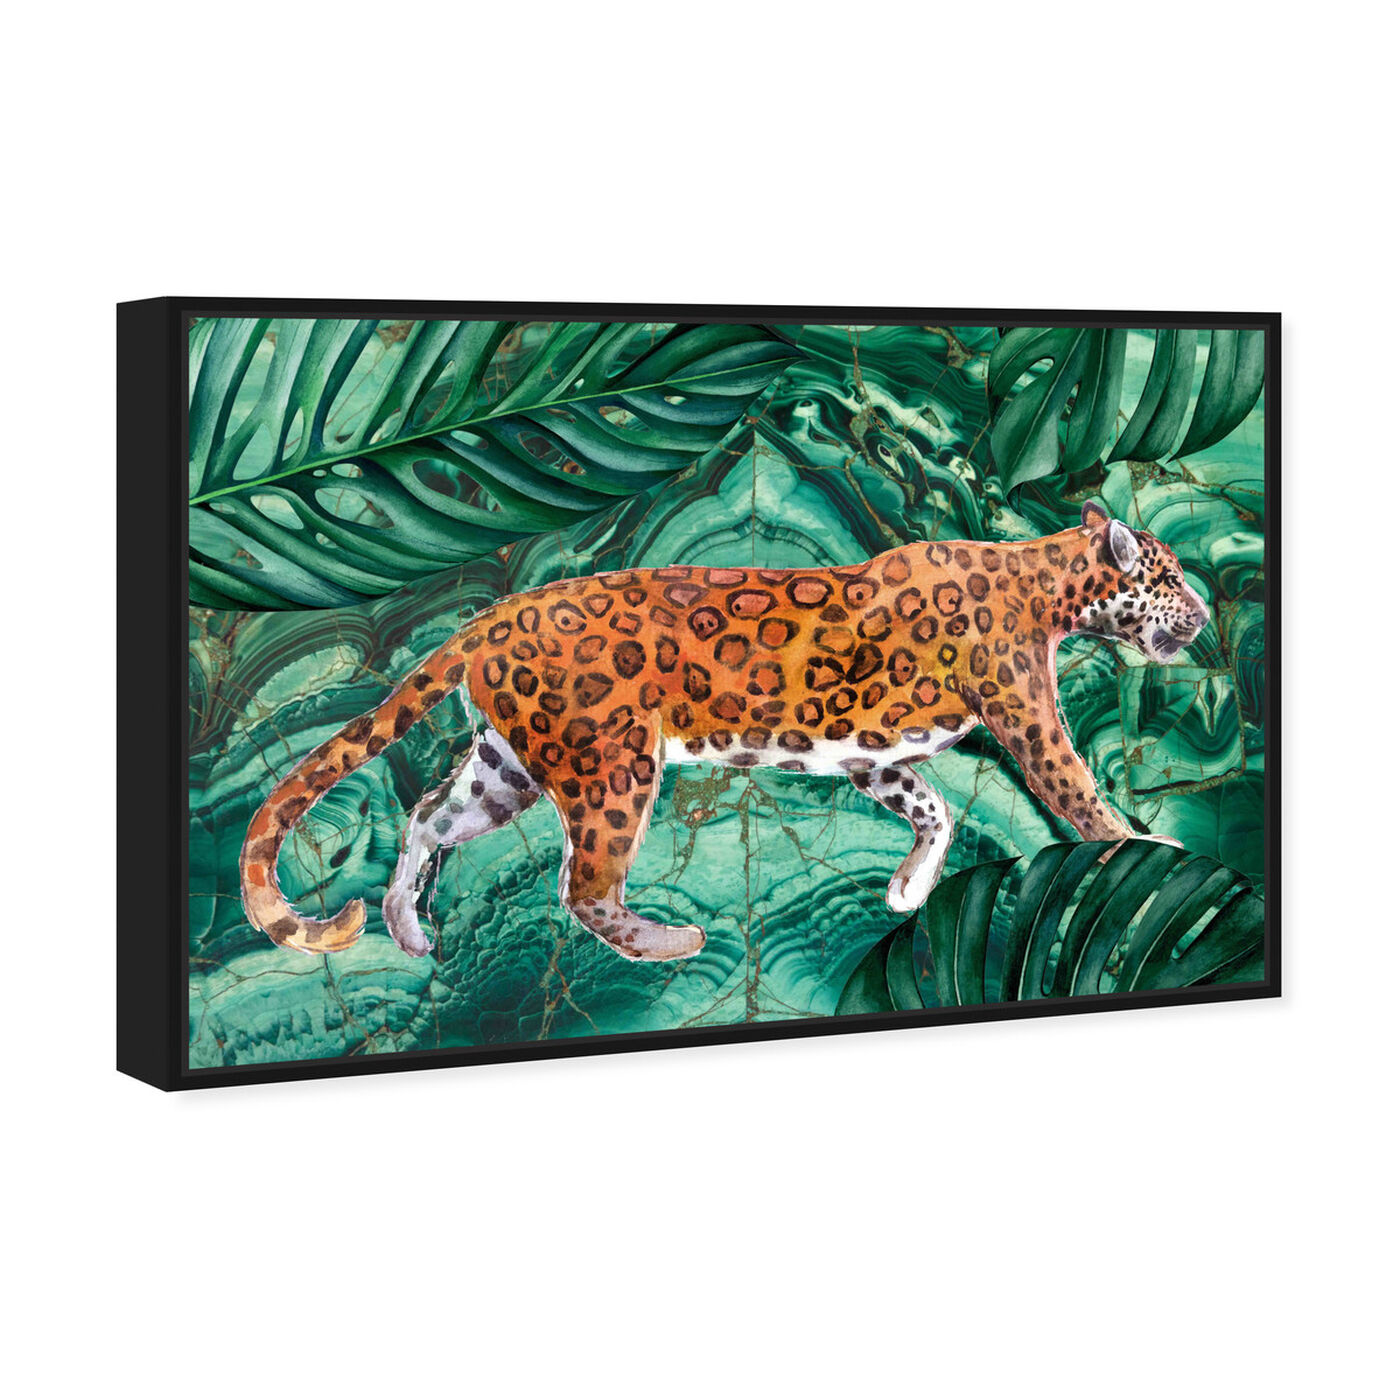 Angled view of Cougar Jungle featuring animals and felines art.